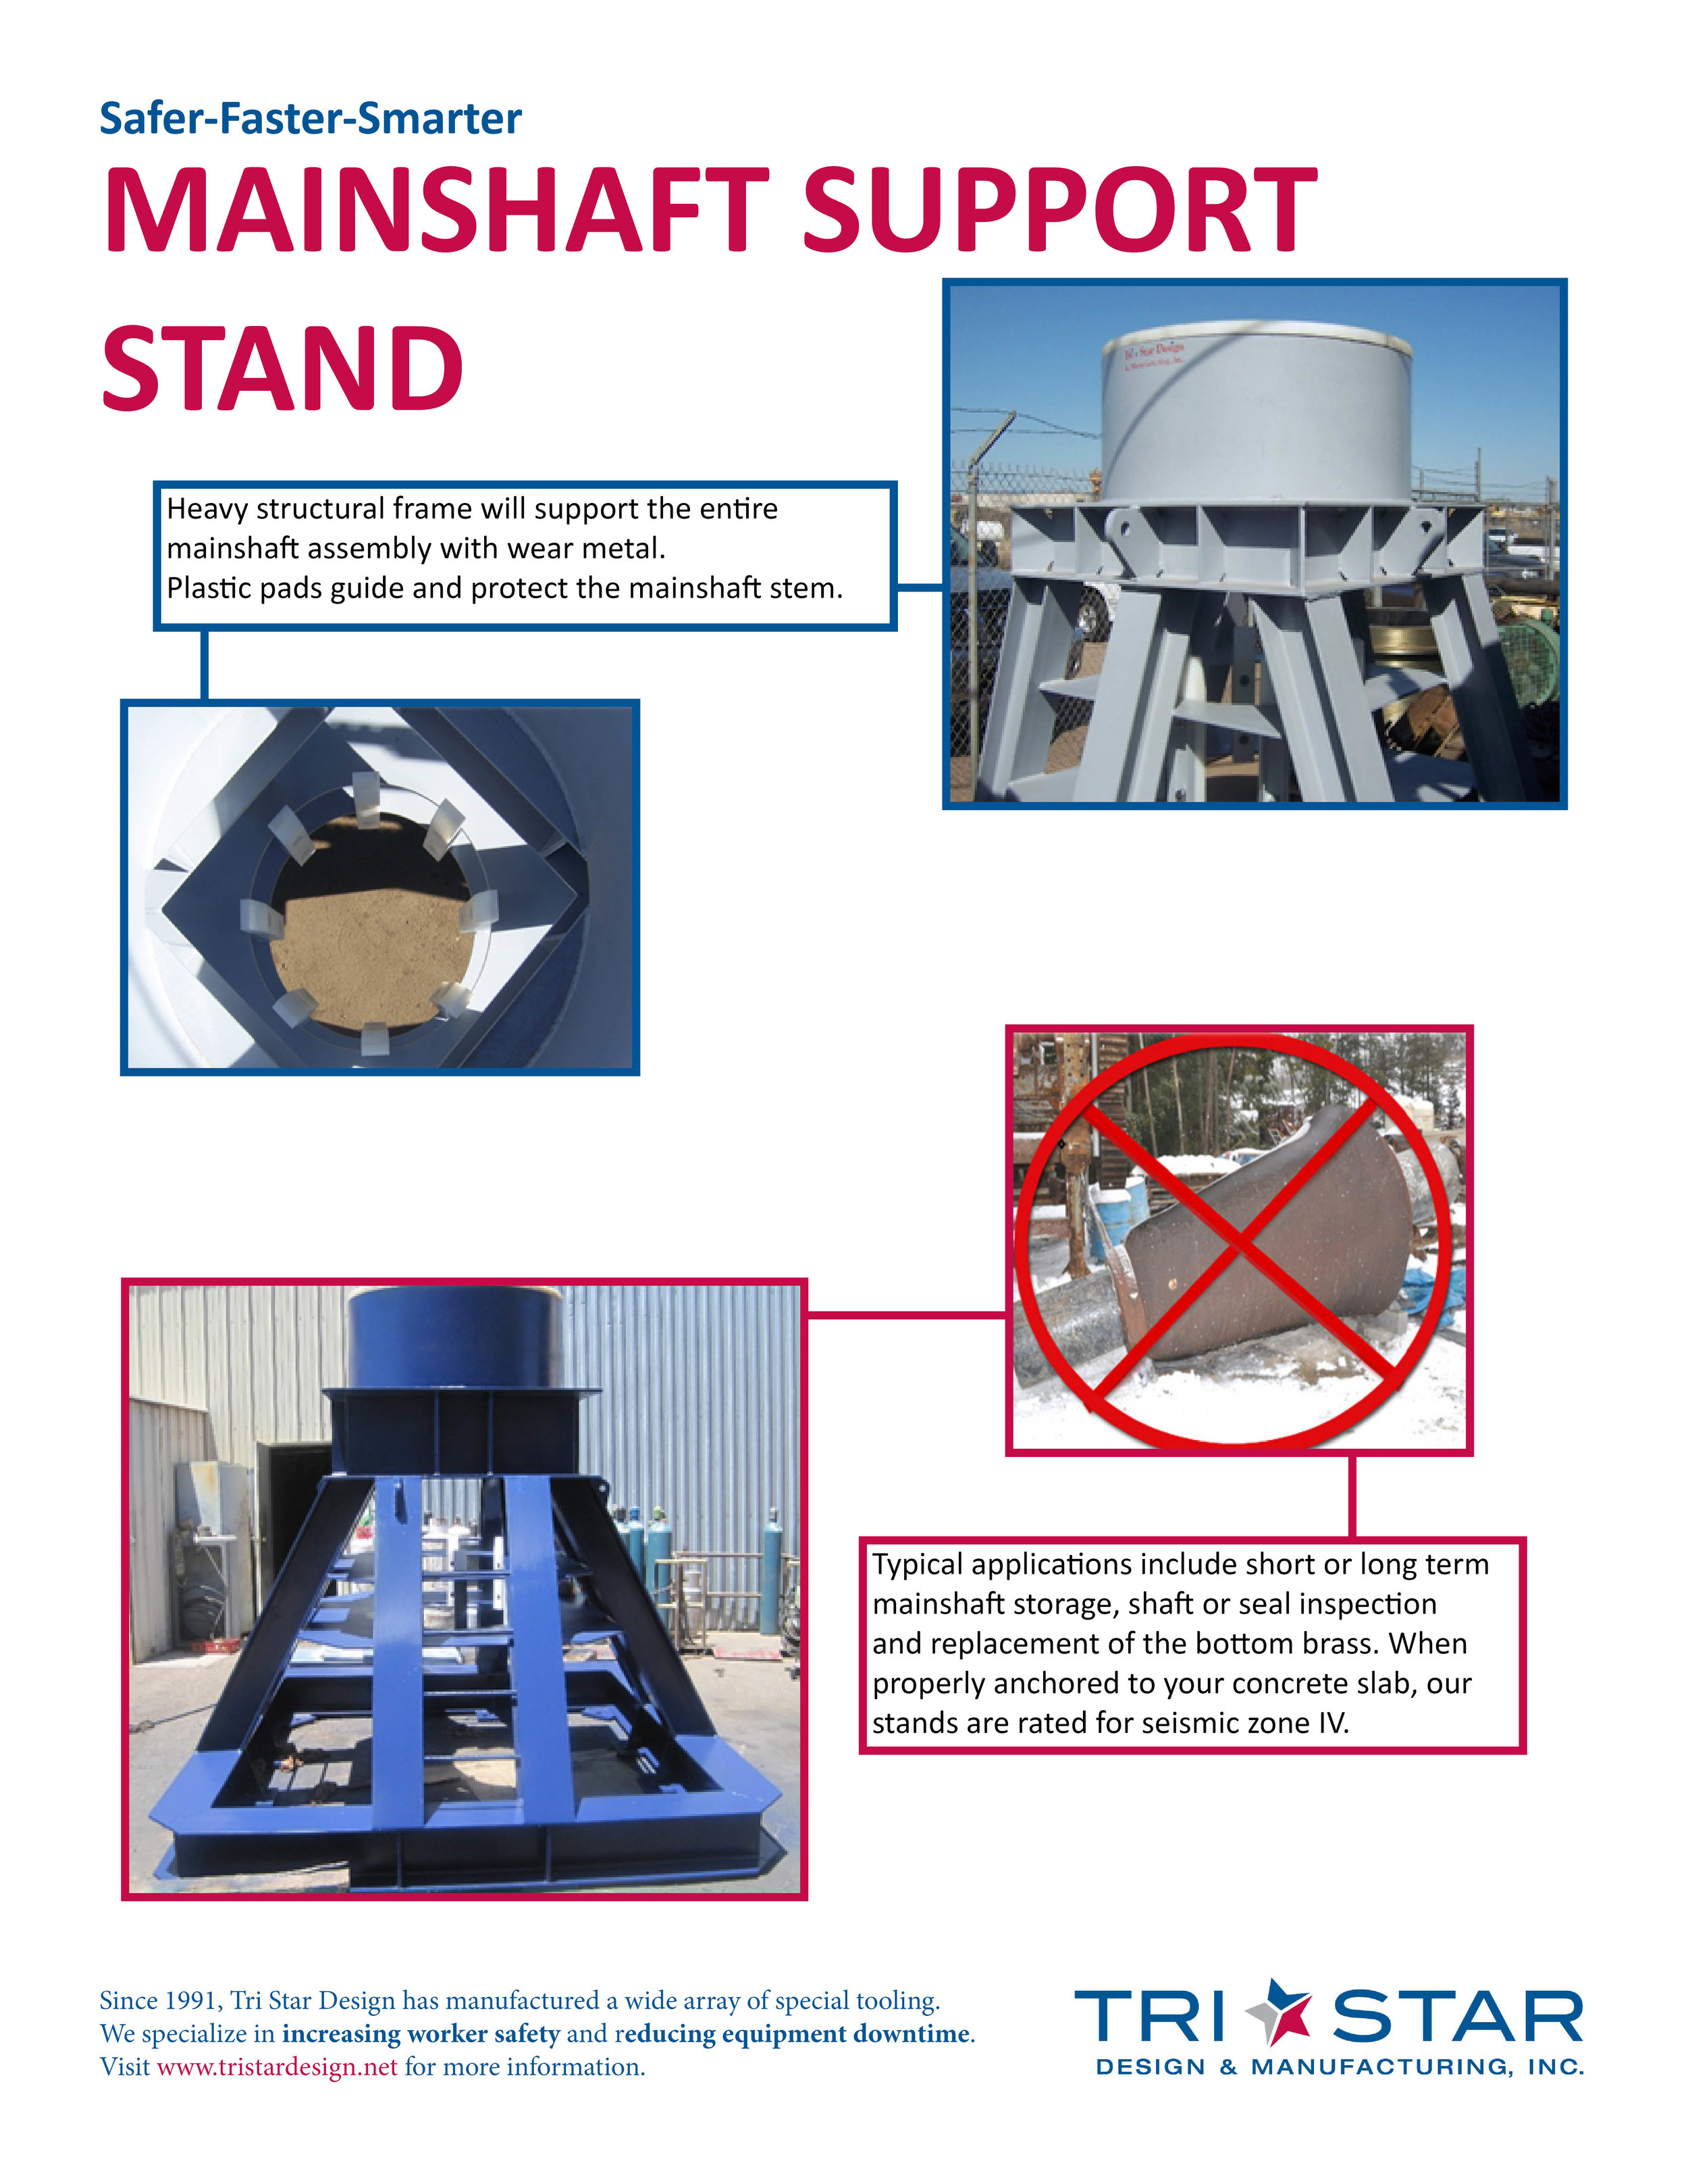 mainshaft support stand pic.jpg